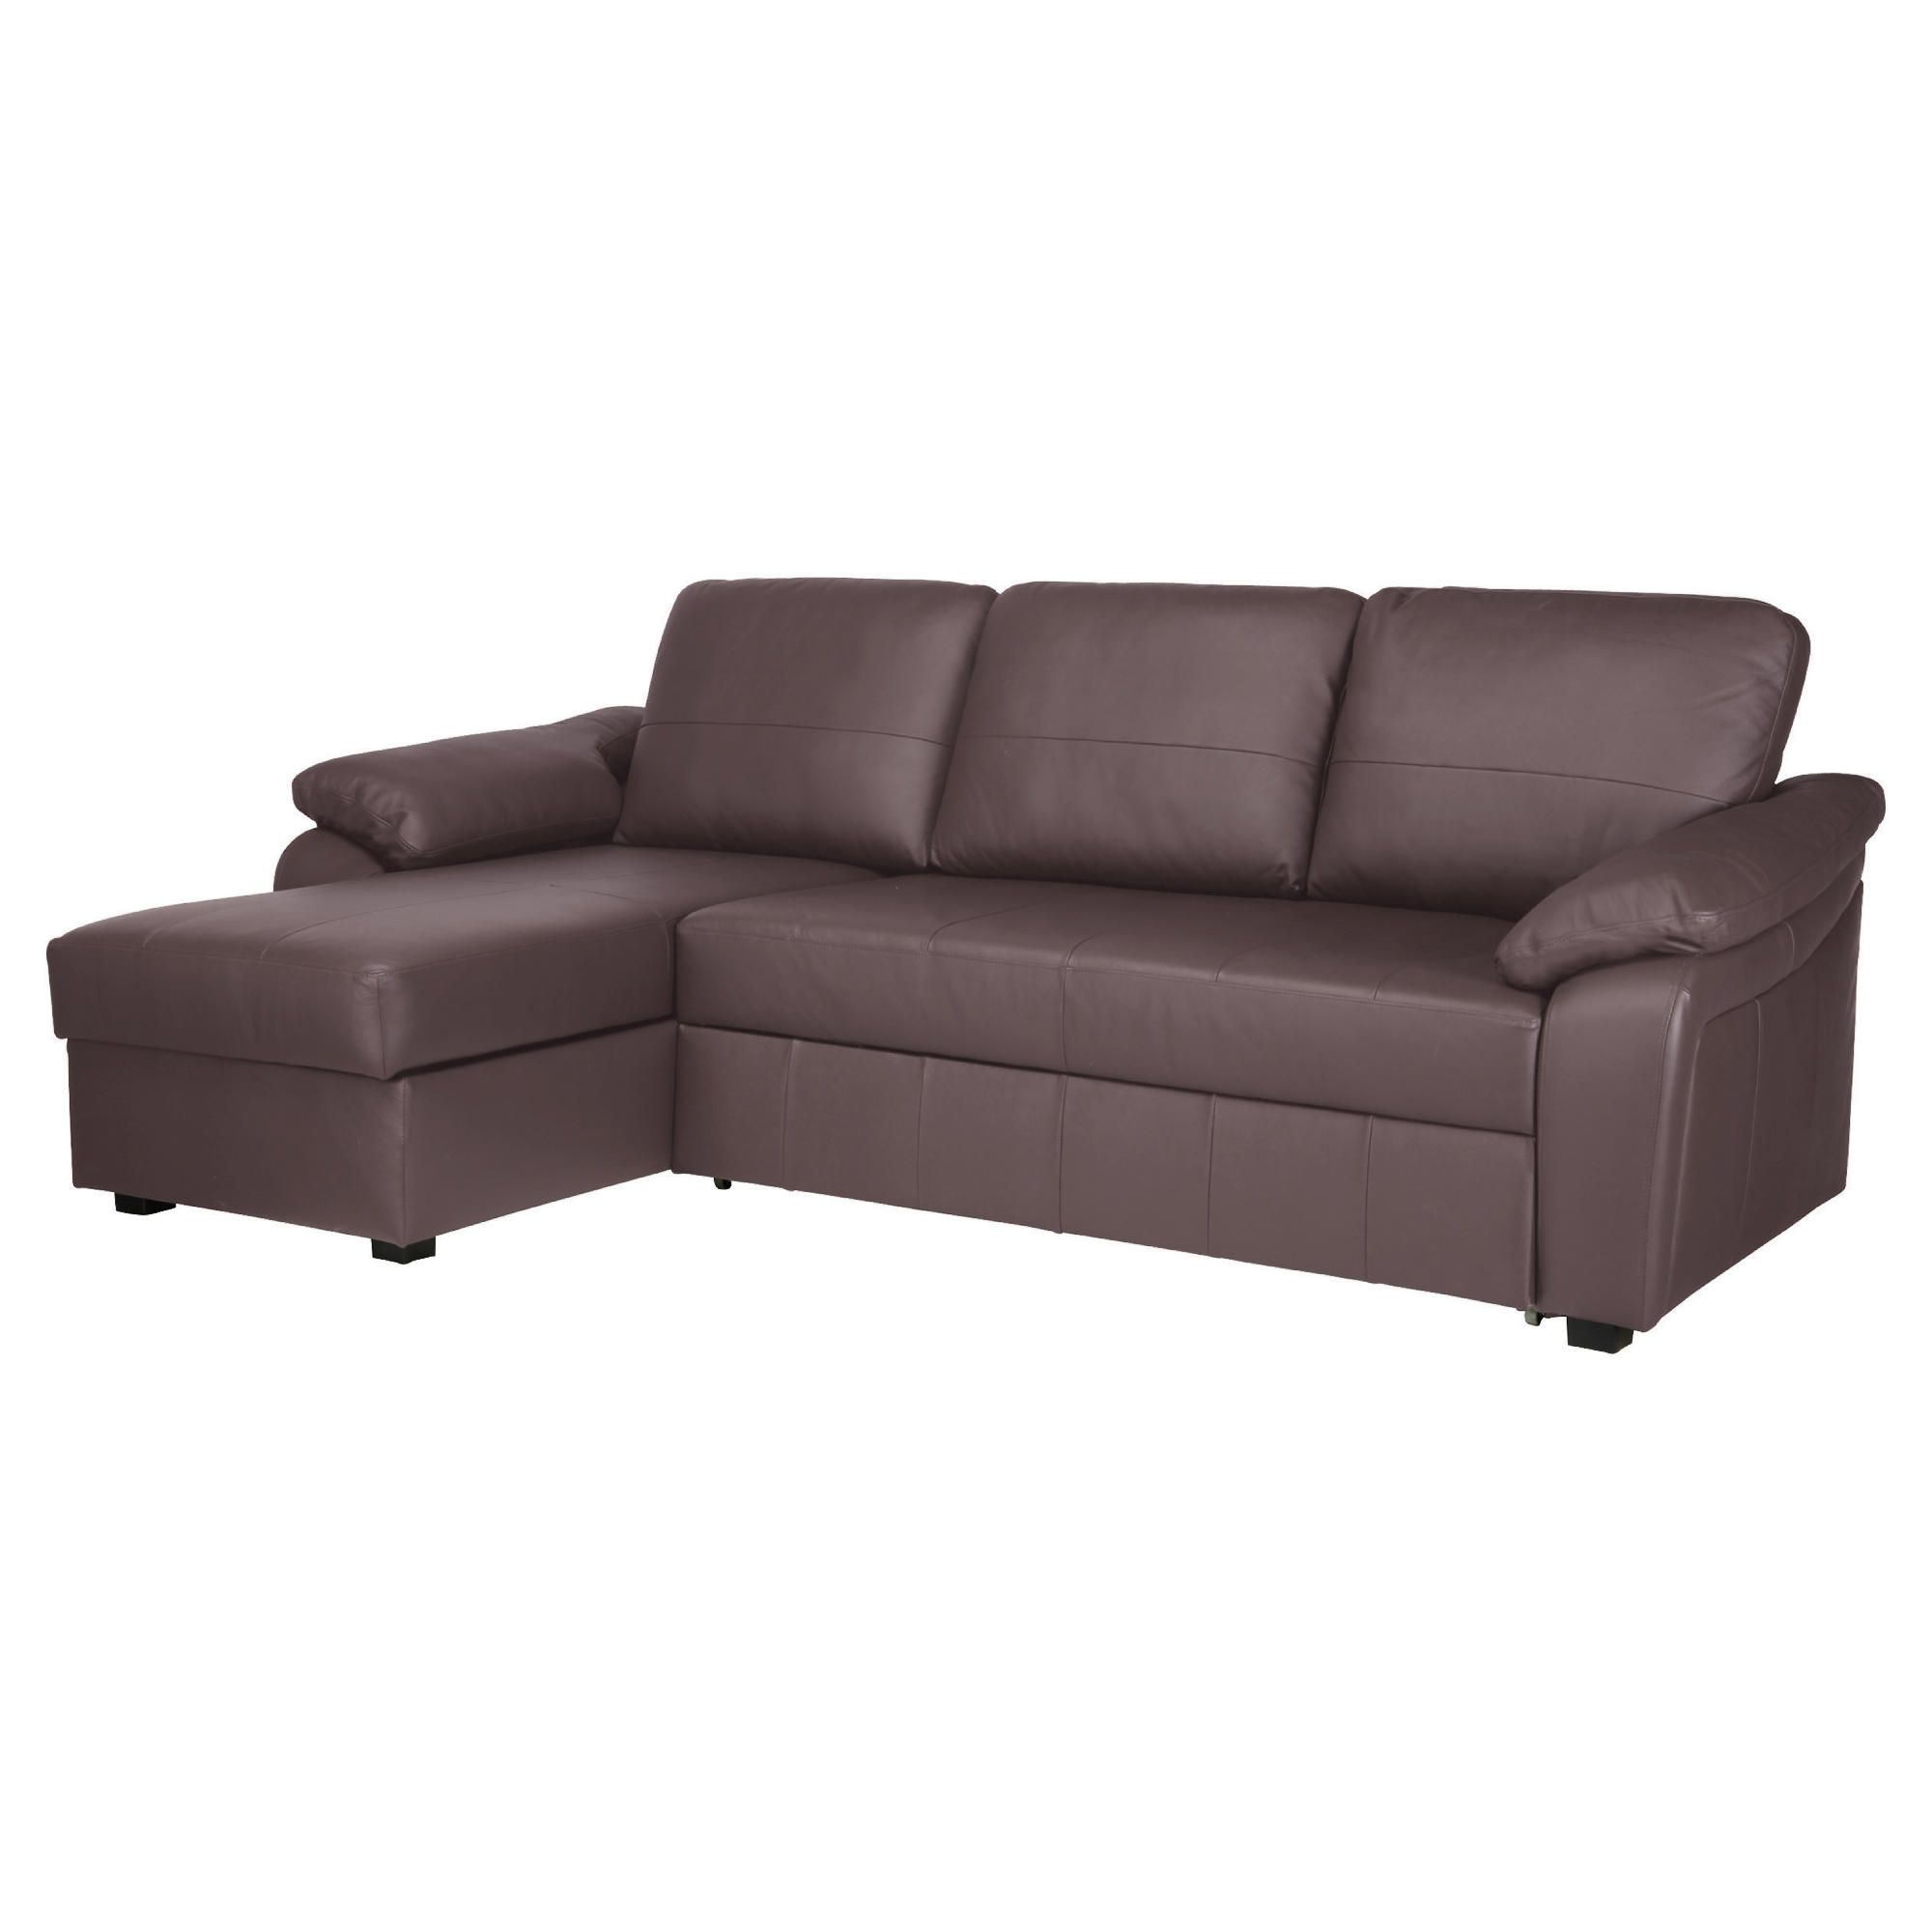 Home and garden furniture ashmore leather corner chaise for Chaise sofa bed